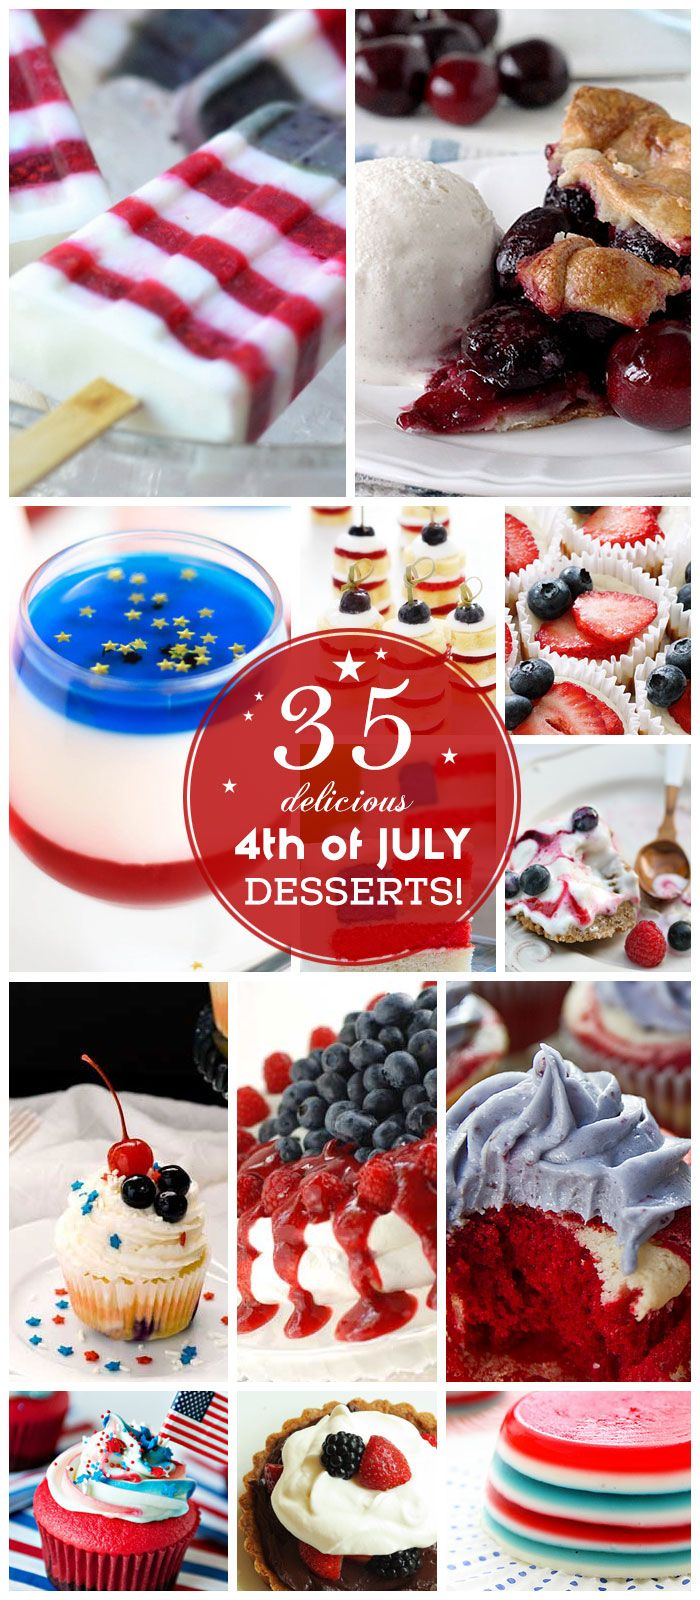 Christmas Desserts For A Crowd.Easy 4th Of July Dessert Recipes For A Crowd Oh How